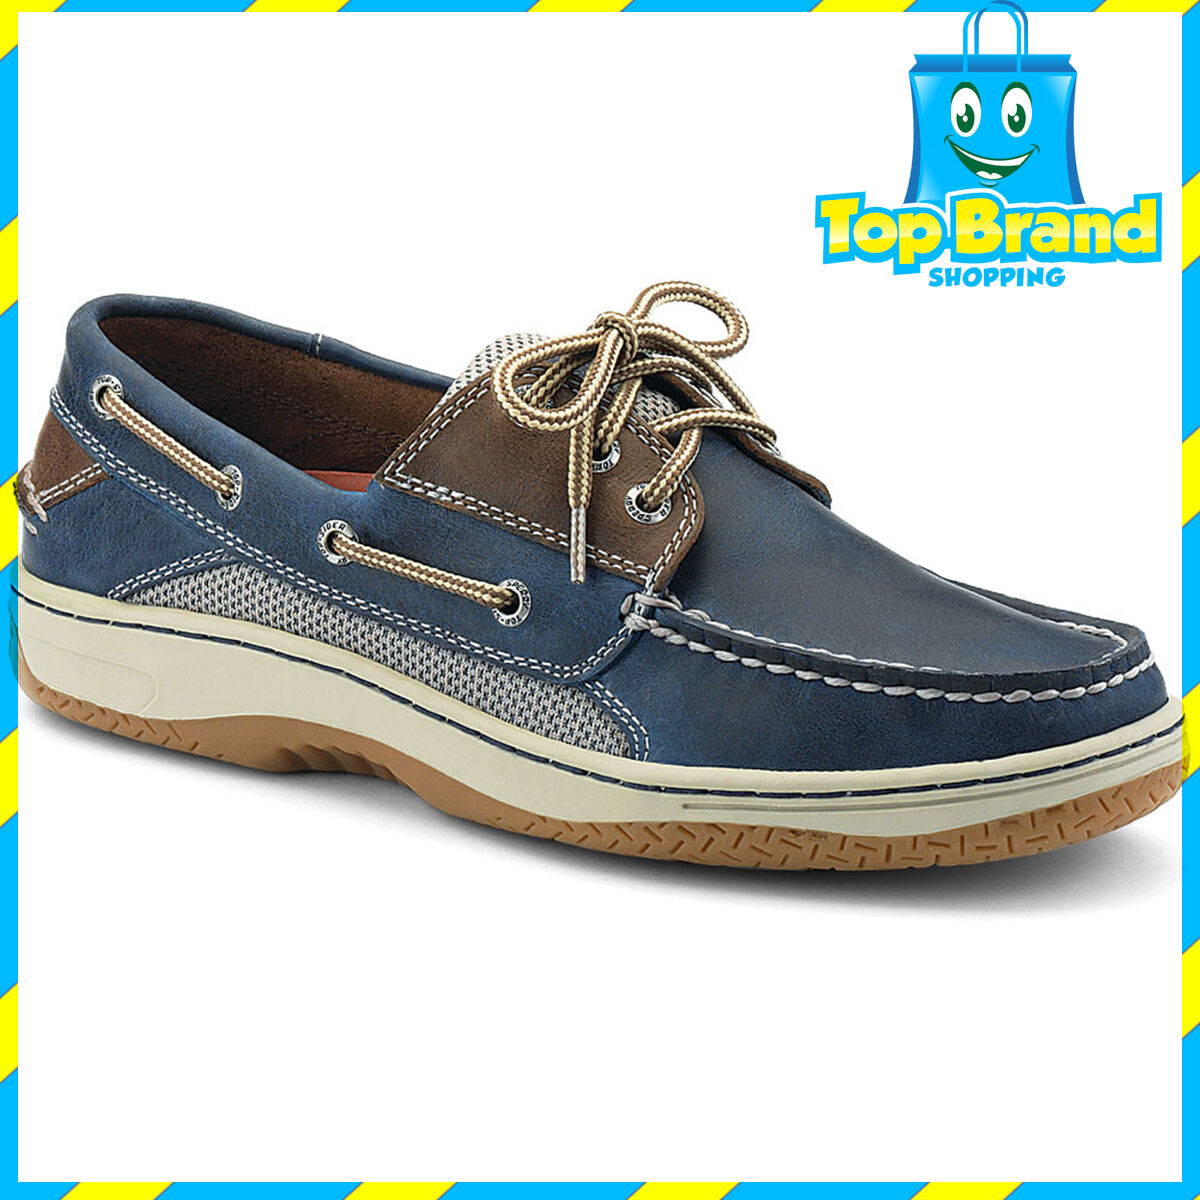 Sperry Mens Billfish 3-Eye Boat Shoe Navy, Shock Absorbing Shoes Casuals Boat